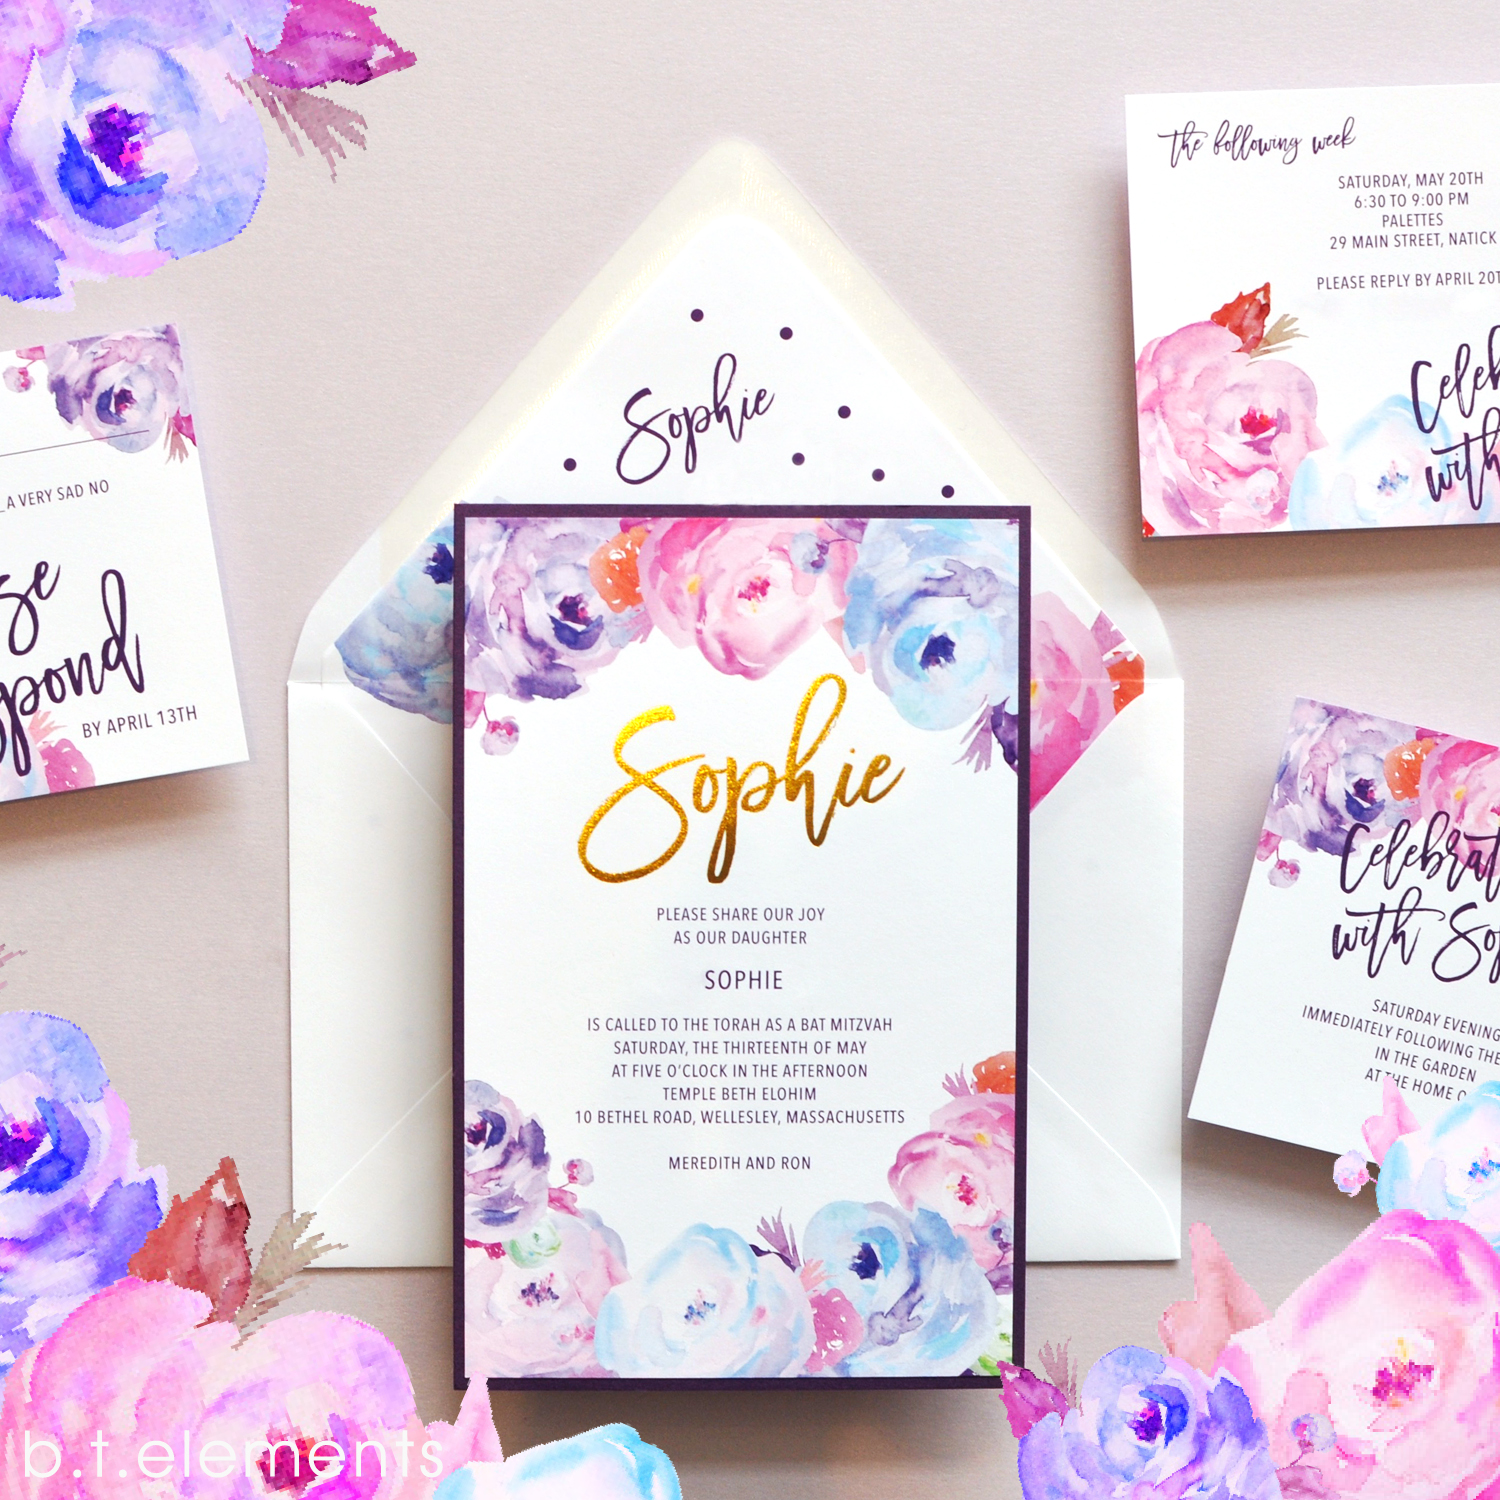 Sophie's Bat Mitzvah Invitation, 2017   Store: Toby Dondis, Ltd. in Waban, MA